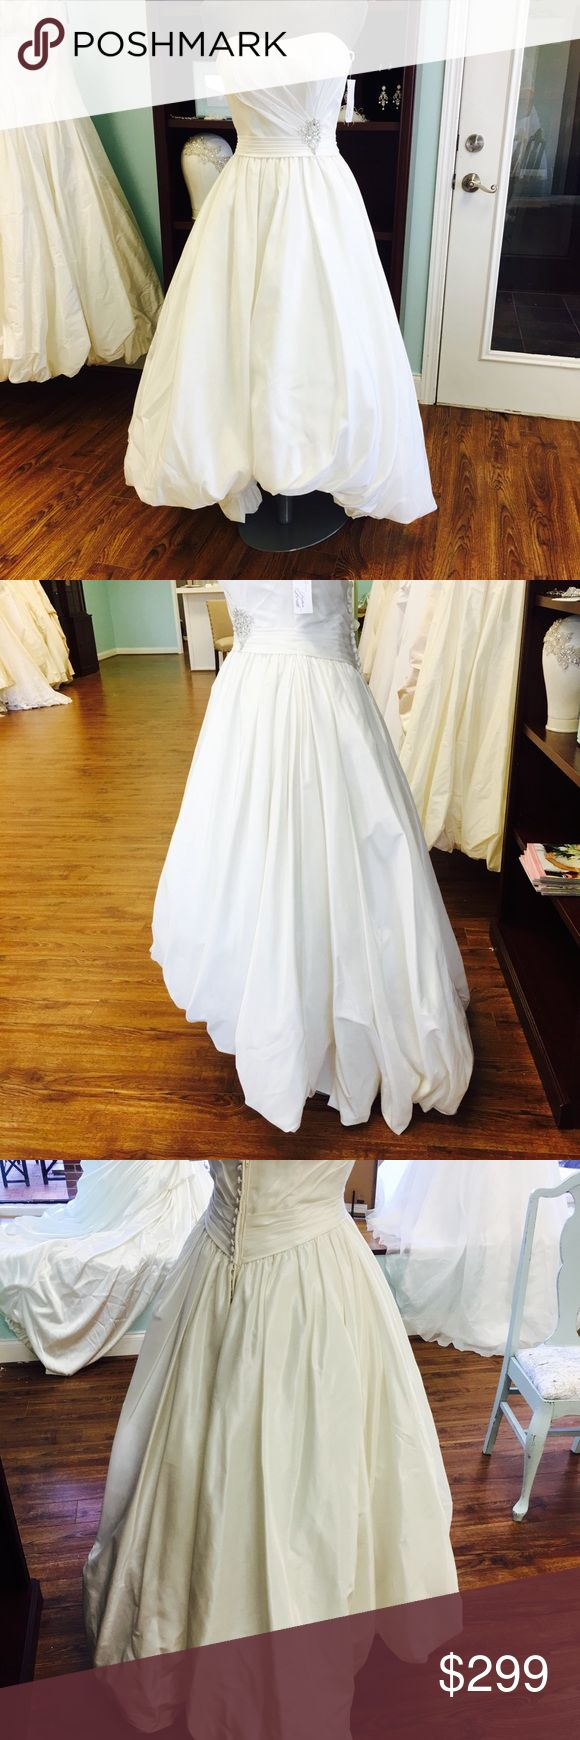 Tea length satin wedding dress size 6 Ivory tea length wedding gown Size 6 Brand new private label gown Beautiful crystal brooch Dresses Wedding